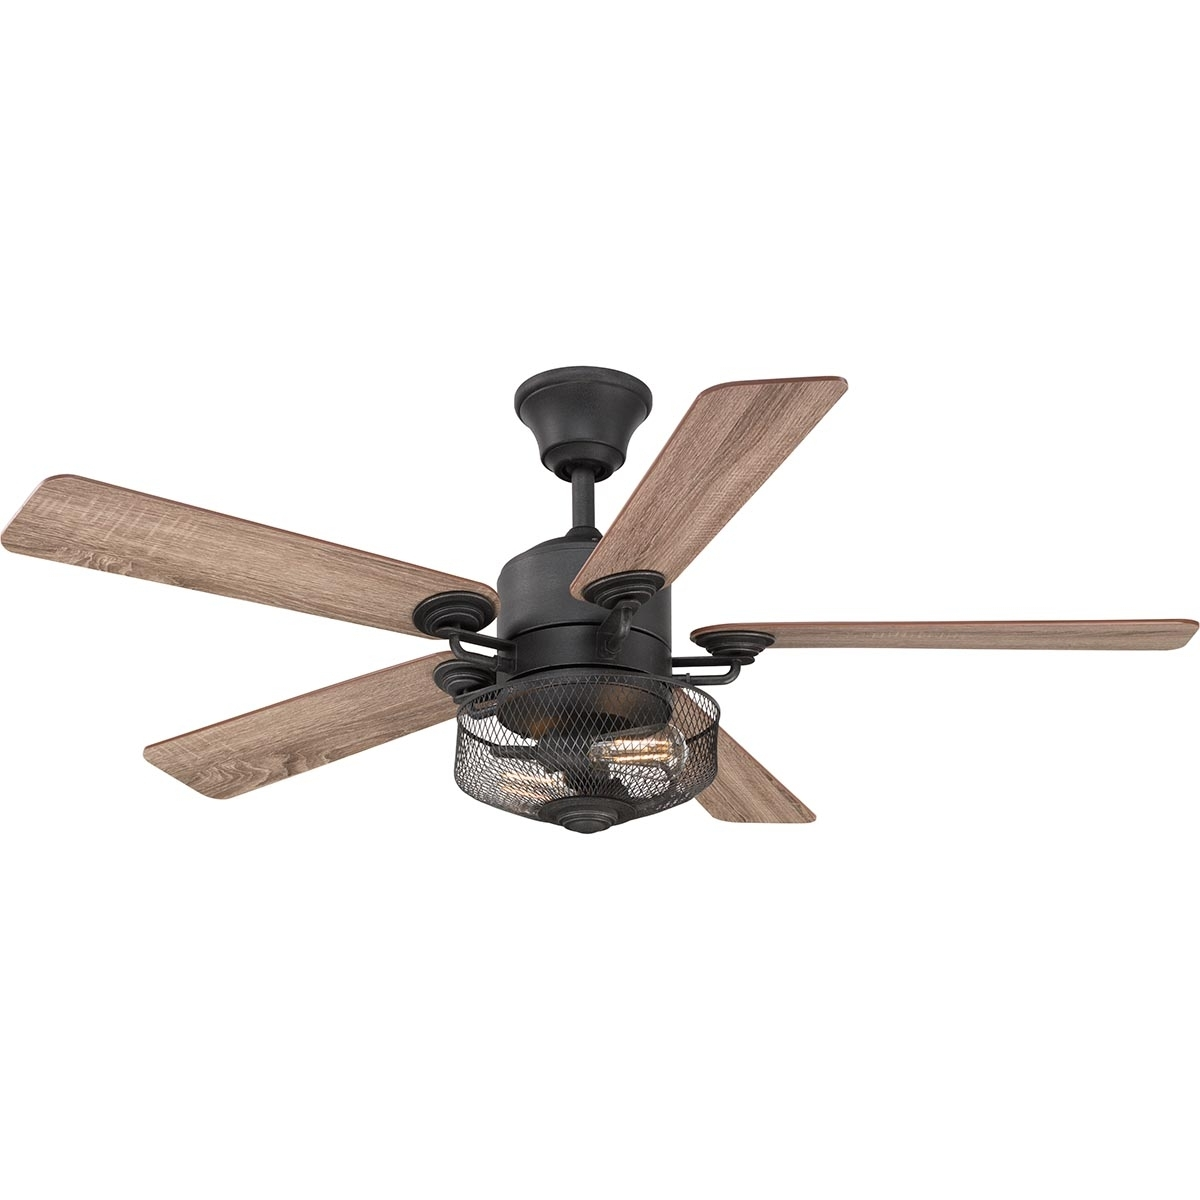 Outdoor Ceiling Fans For 7 Foot Ceilings With Well Liked Ceiling Fans – Progress Lighting (View 16 of 20)